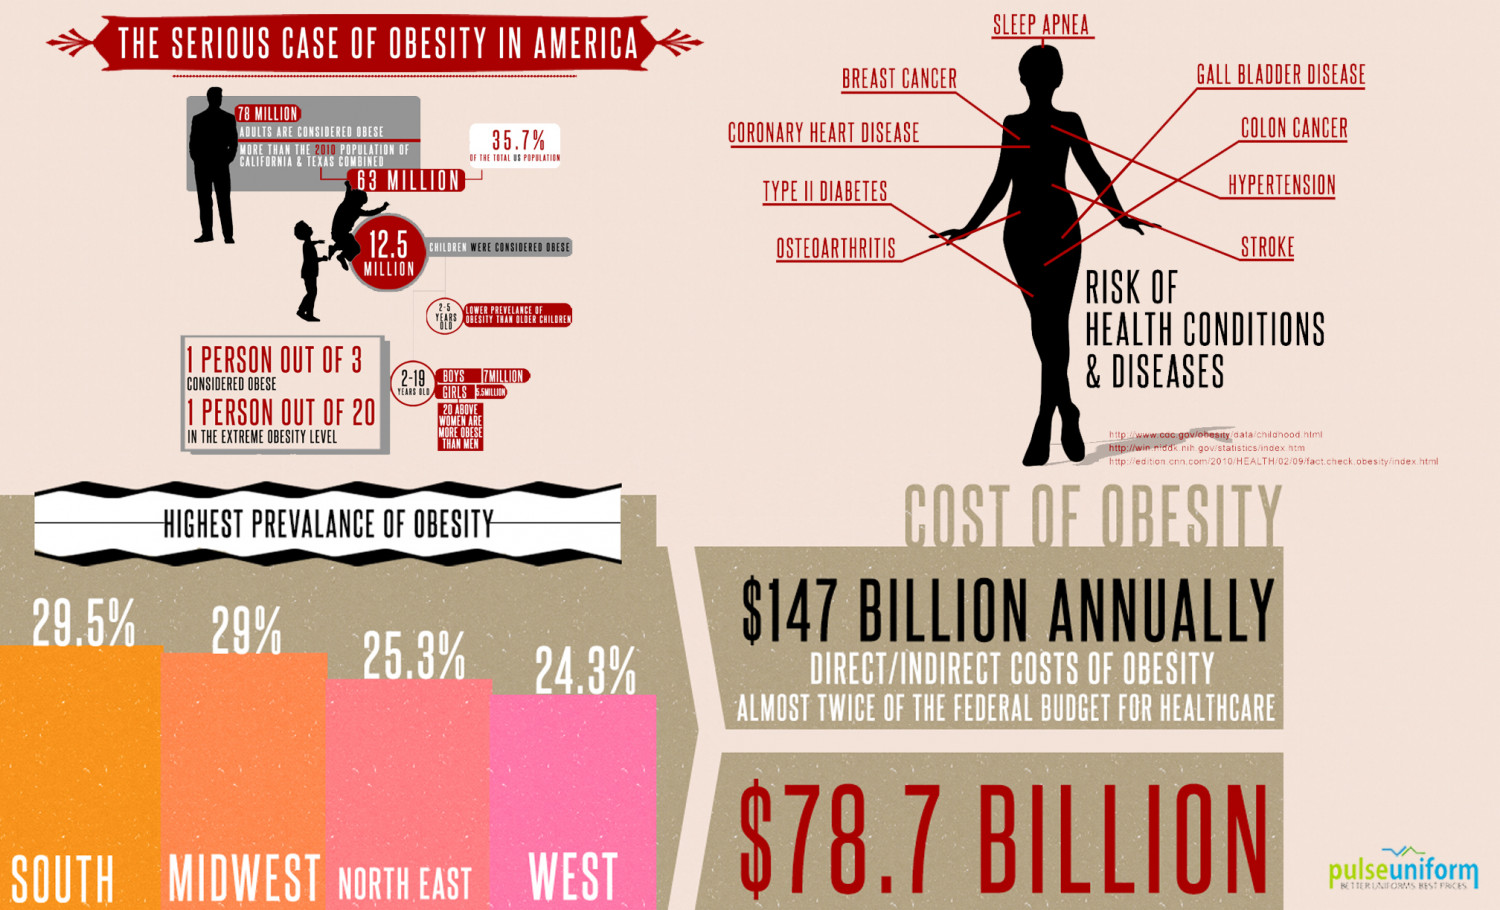 The Serious Case of Obesity in America Infographic